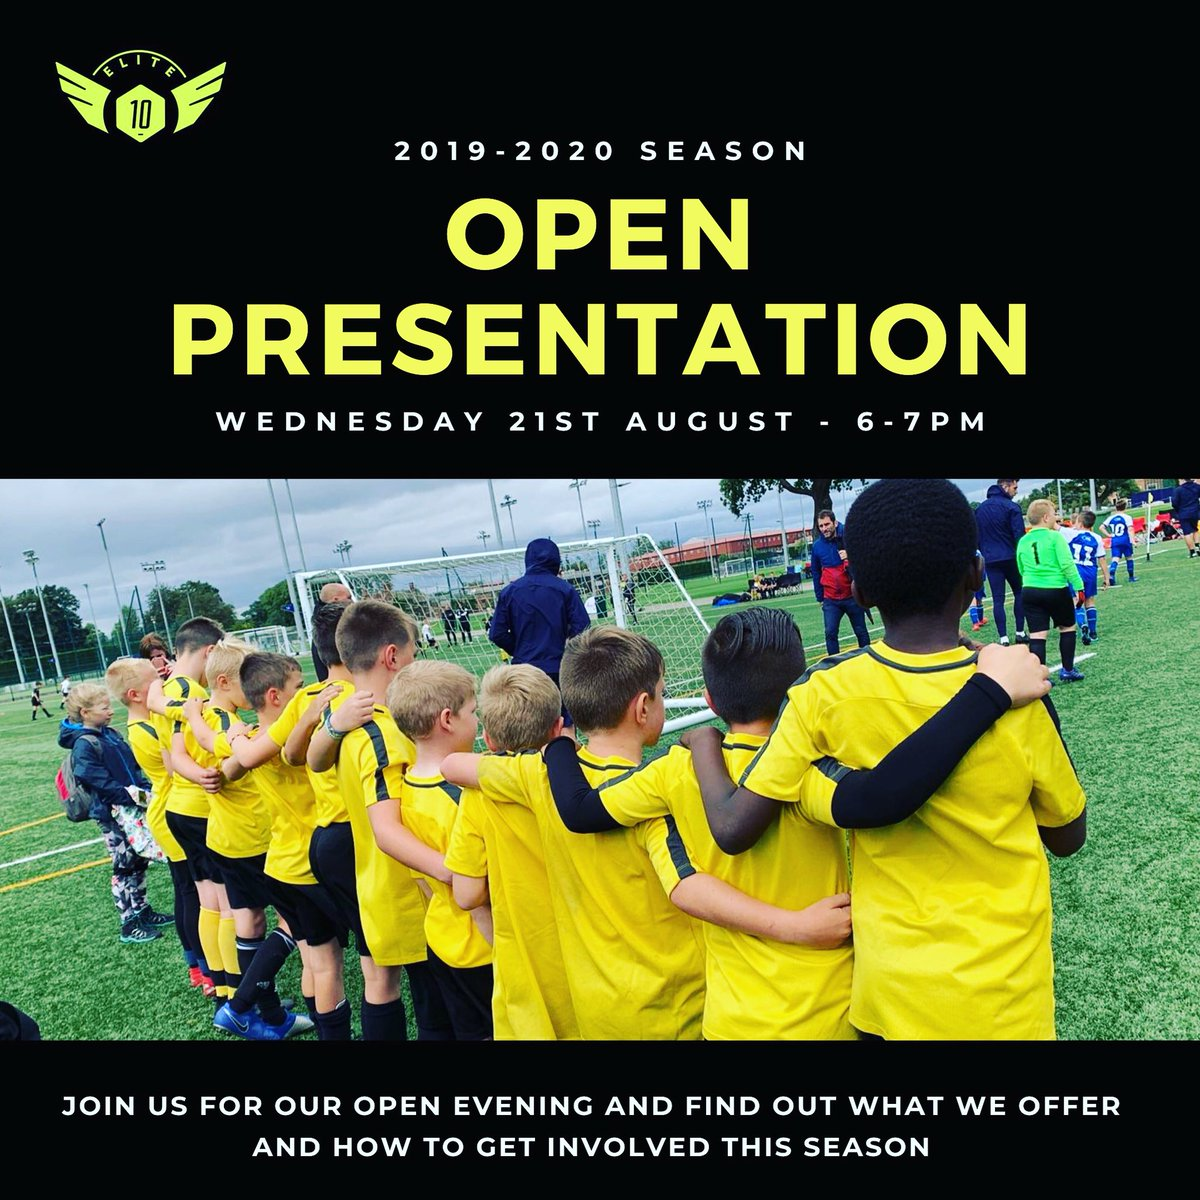 On Wednesday 21st August we will be holding our annual open evening for the 2019-2020 season to tell you all about our huge plans for the season ahead. The presentation will be held in the bar at Tooting & Mitcham FC, Bishopford Road, SM4 6BF from 6-7pm. Everyone Welcome! 🔟⚽️